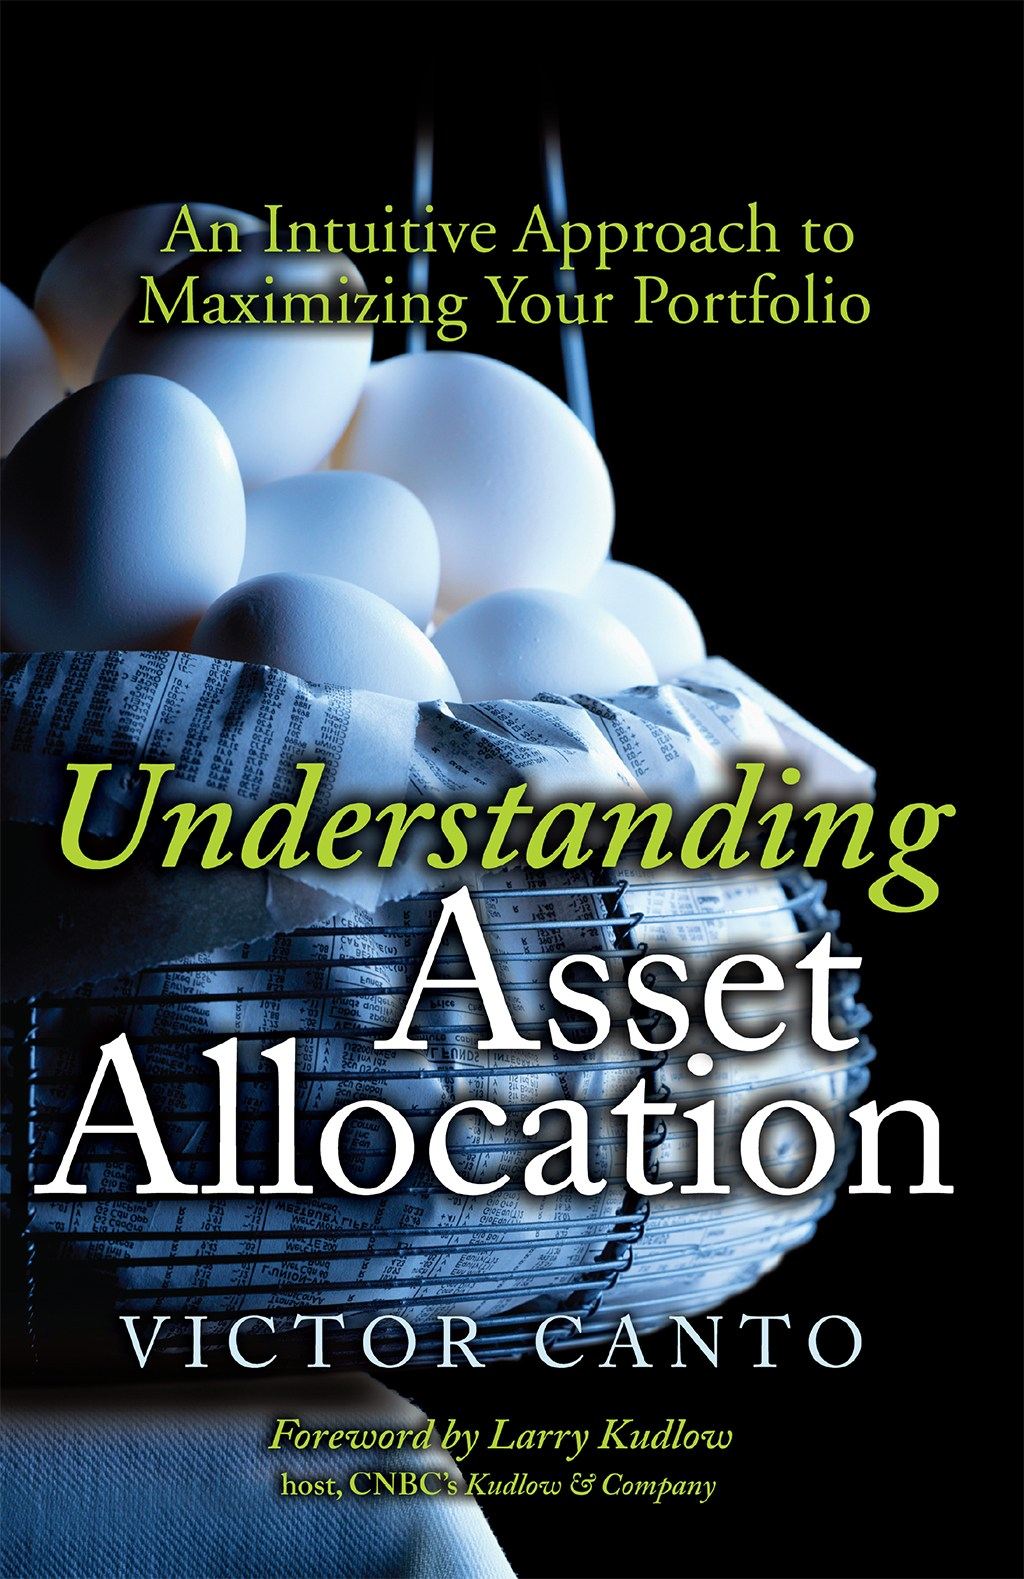 Understanding Asset Allocation: An Intuitive Approach to Maximizing Your Portfolio (paperback)